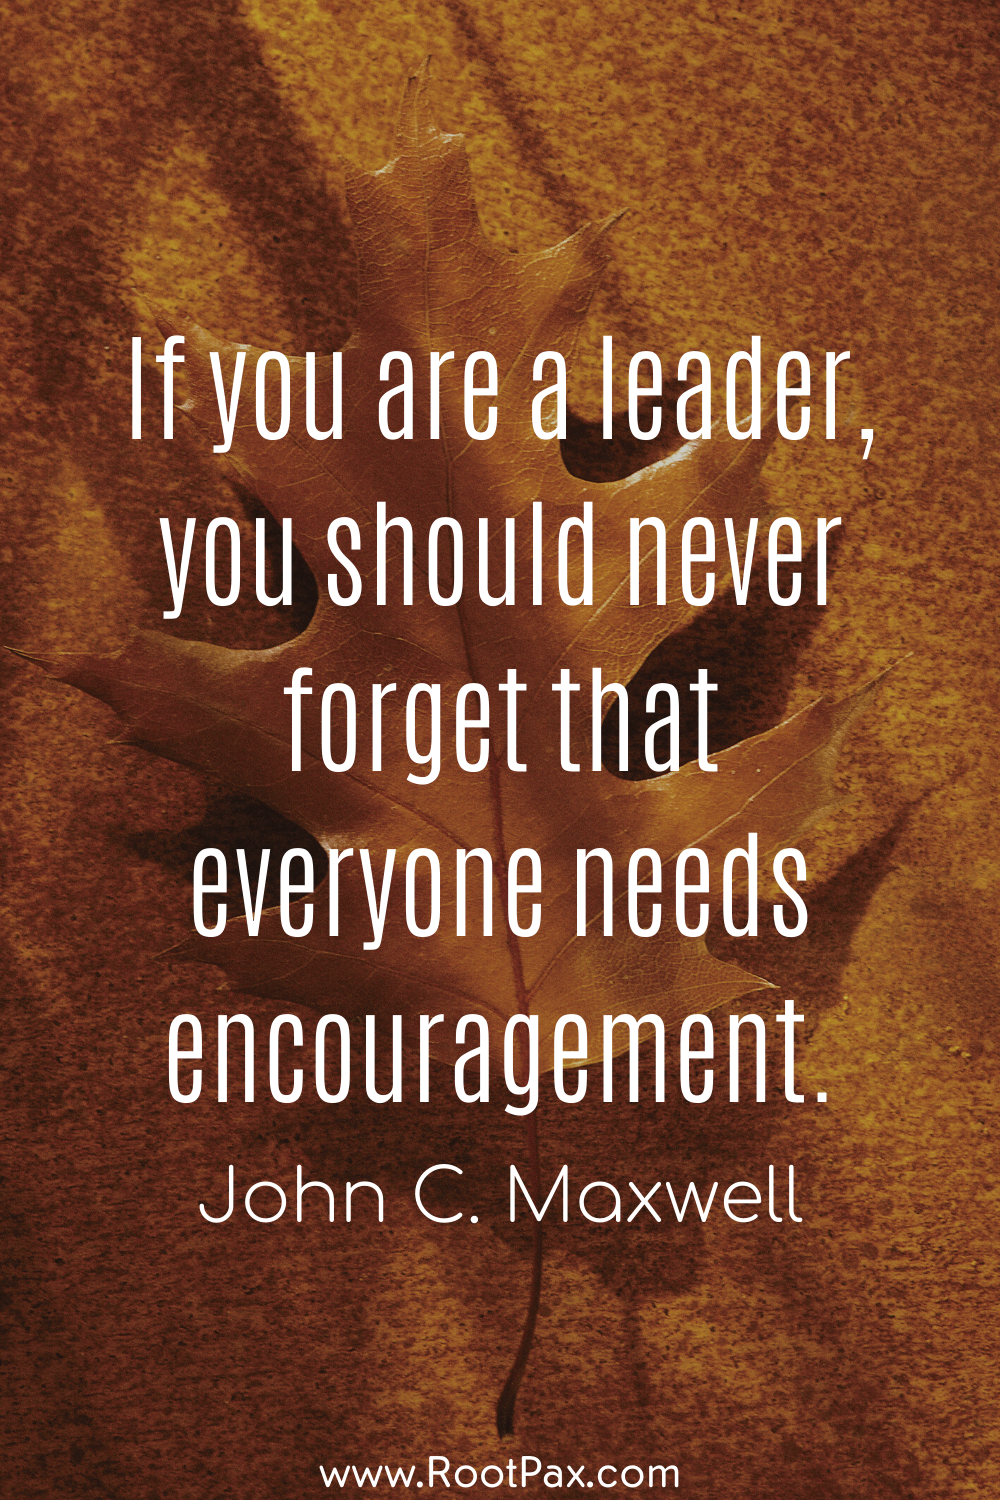 Leadership quote! #personalgrowth